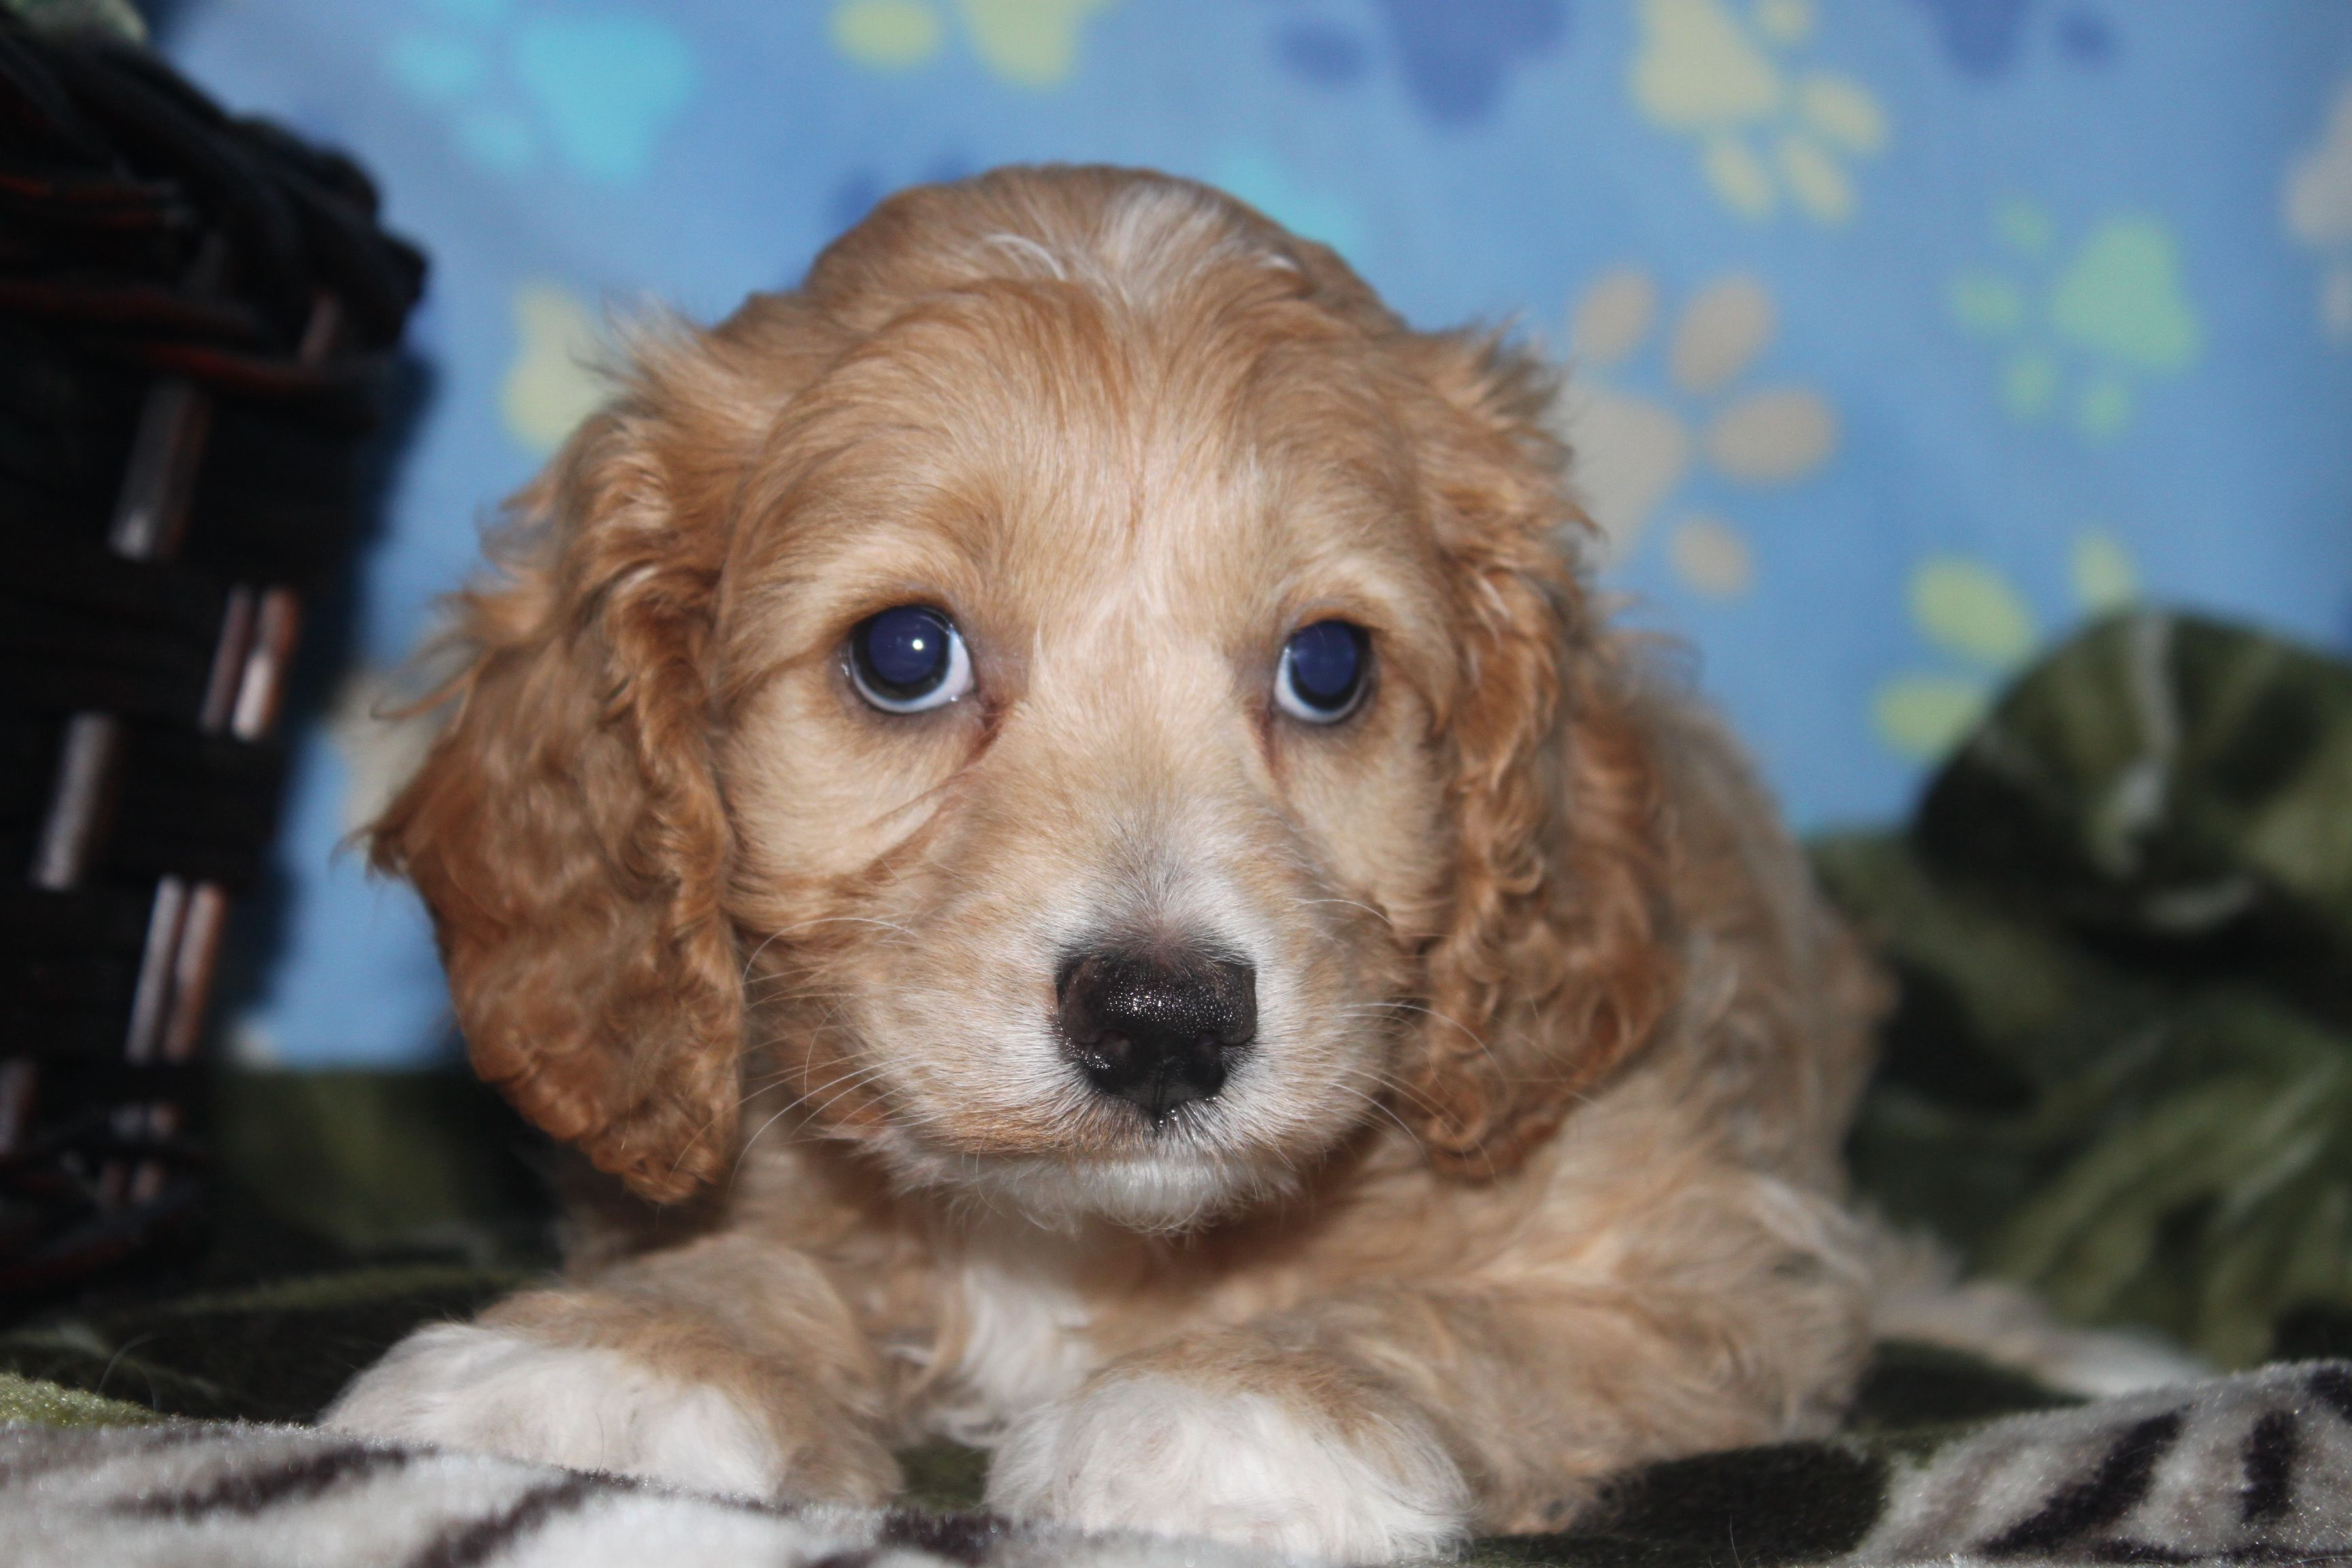 Cockapoo Puppies Here Is A Really Nice Cockapoo Puppy For Sale At Http Www Network34 Com Dogsbreed Cocka Cockapoo Puppies For Sale Cockapoo Puppies Puppies